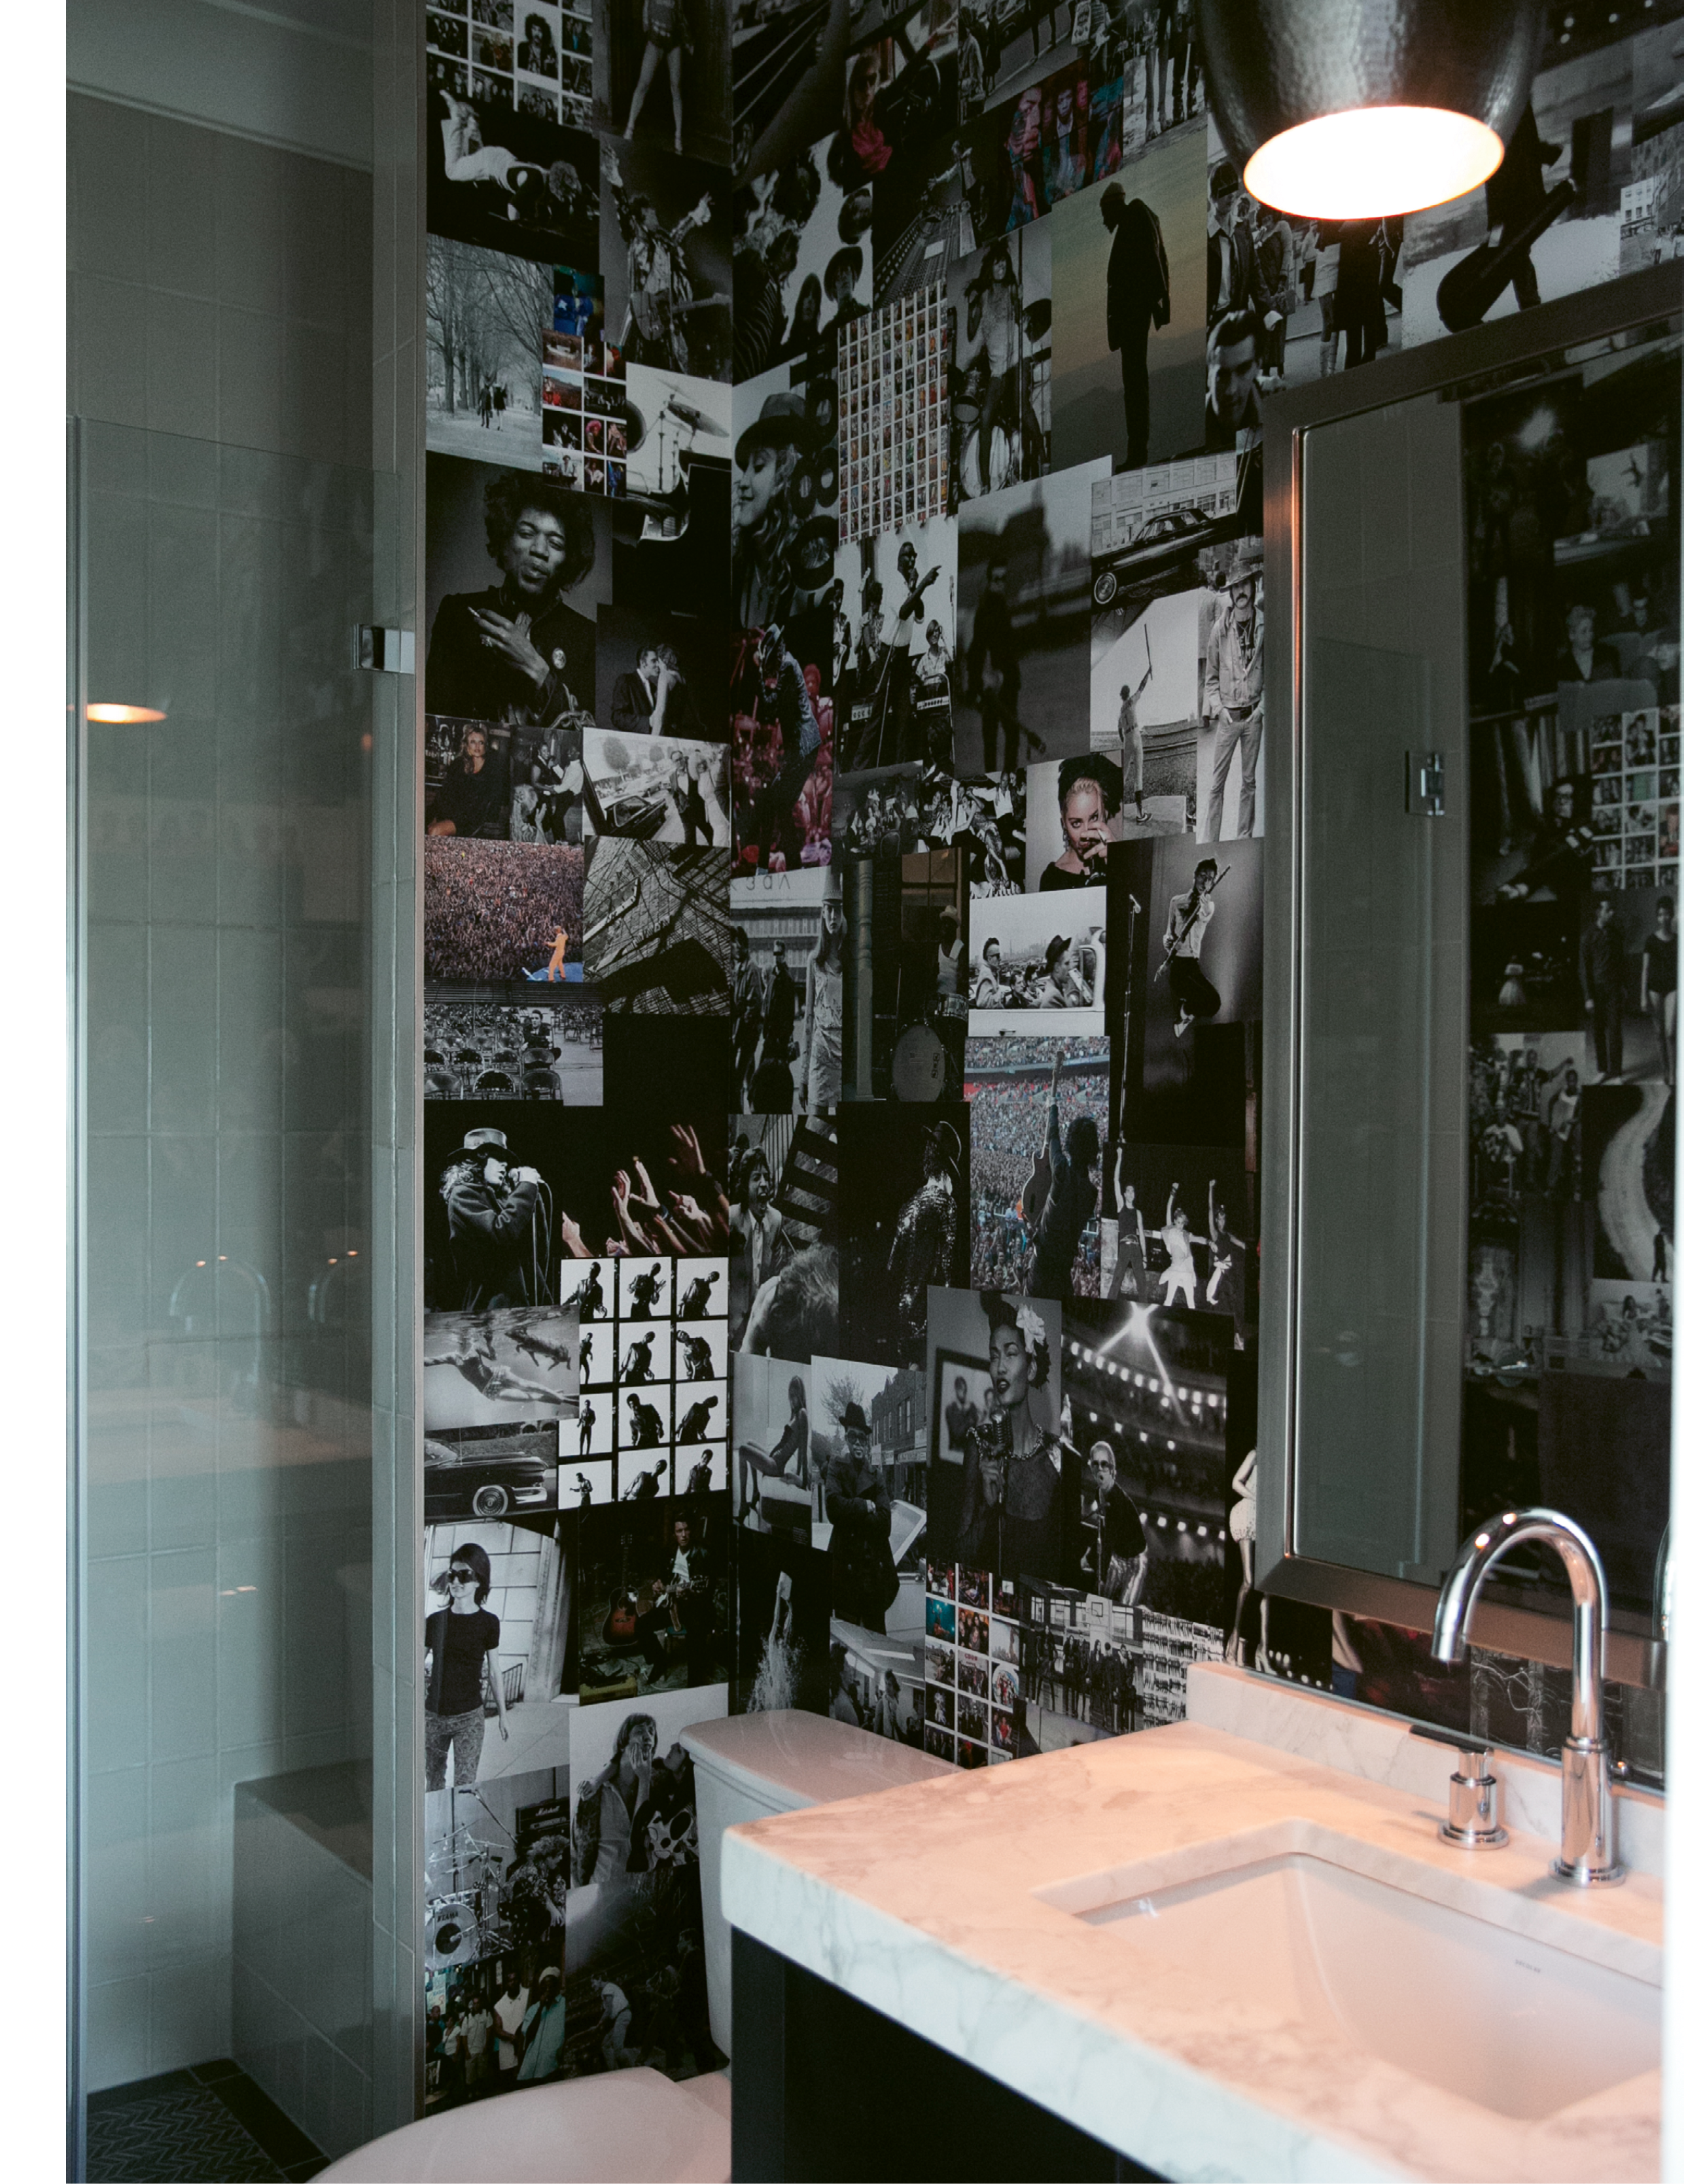 Melissa and Brad made the wallpaper in this first-floor bath themselves, using favorite photos of musicians they ripped from coffee-table books.